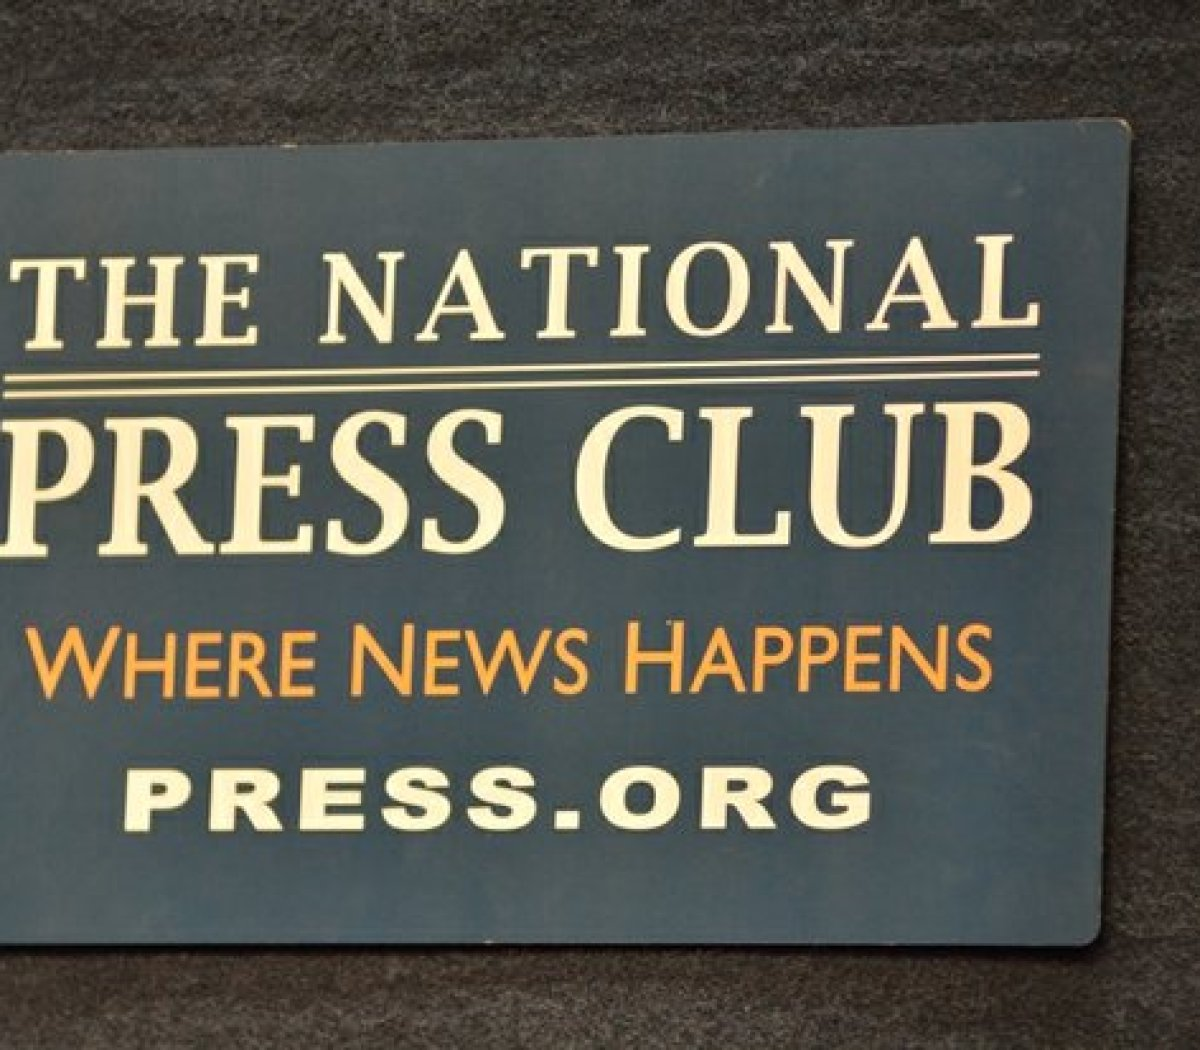 The National Press Club served as the meeting place for the Sixth Annual Stateswomen for Justice Luncheon, Thursday, March 31, 2016 in Northwest. /Photo by Patricia Little @5feet2